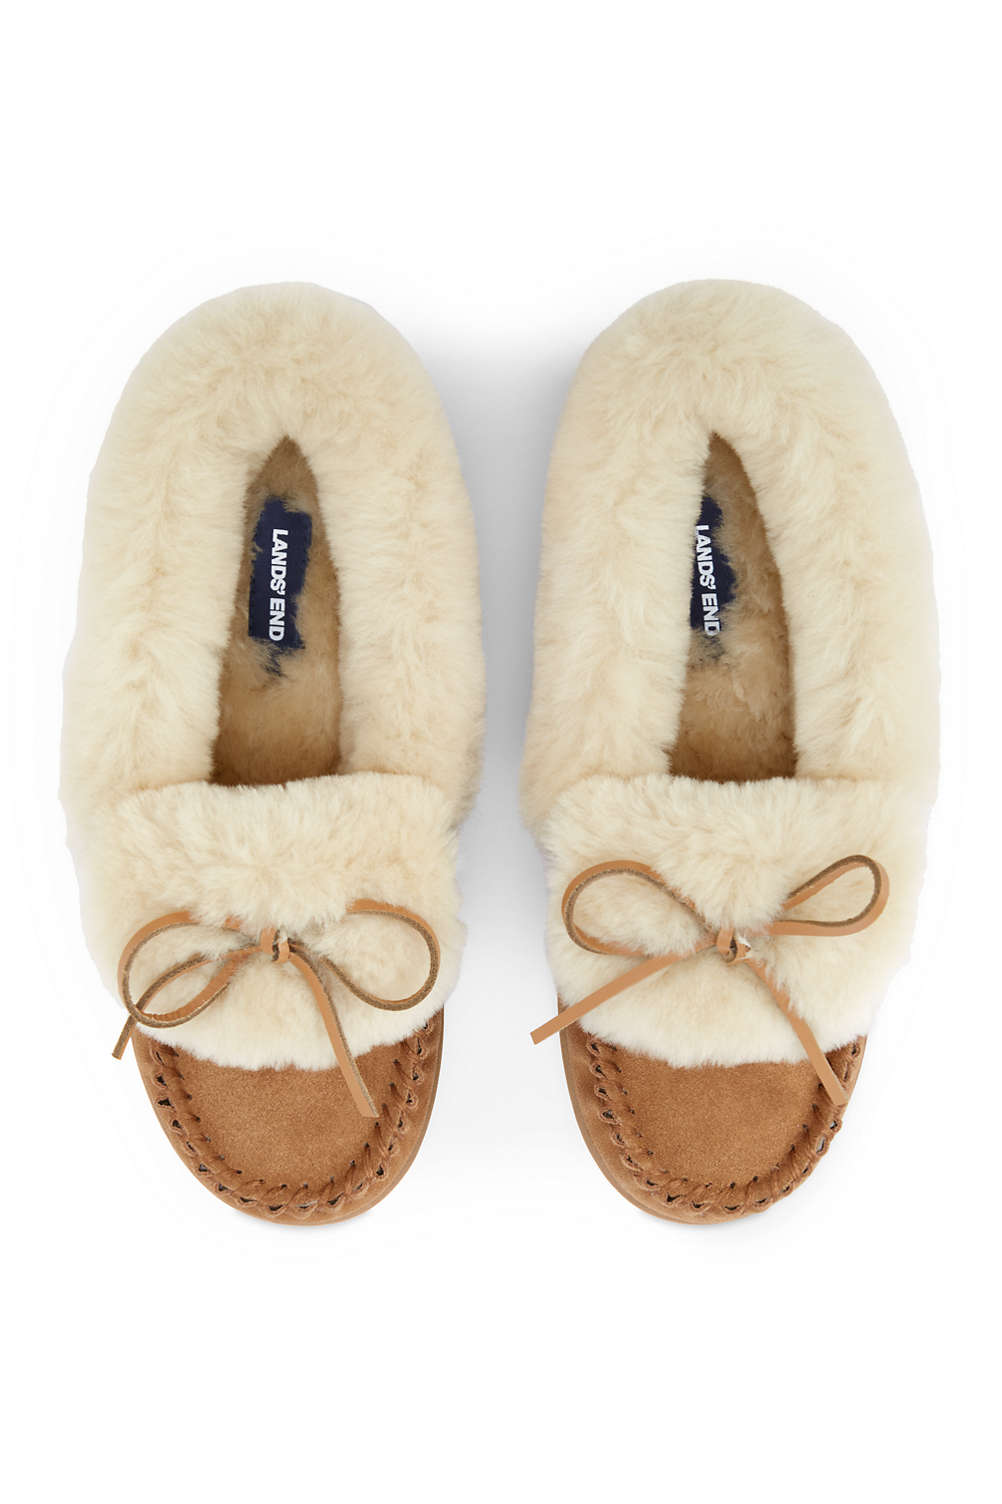 41233d12846 Women s Suede Shearling Moccasin Slippers from Lands  End